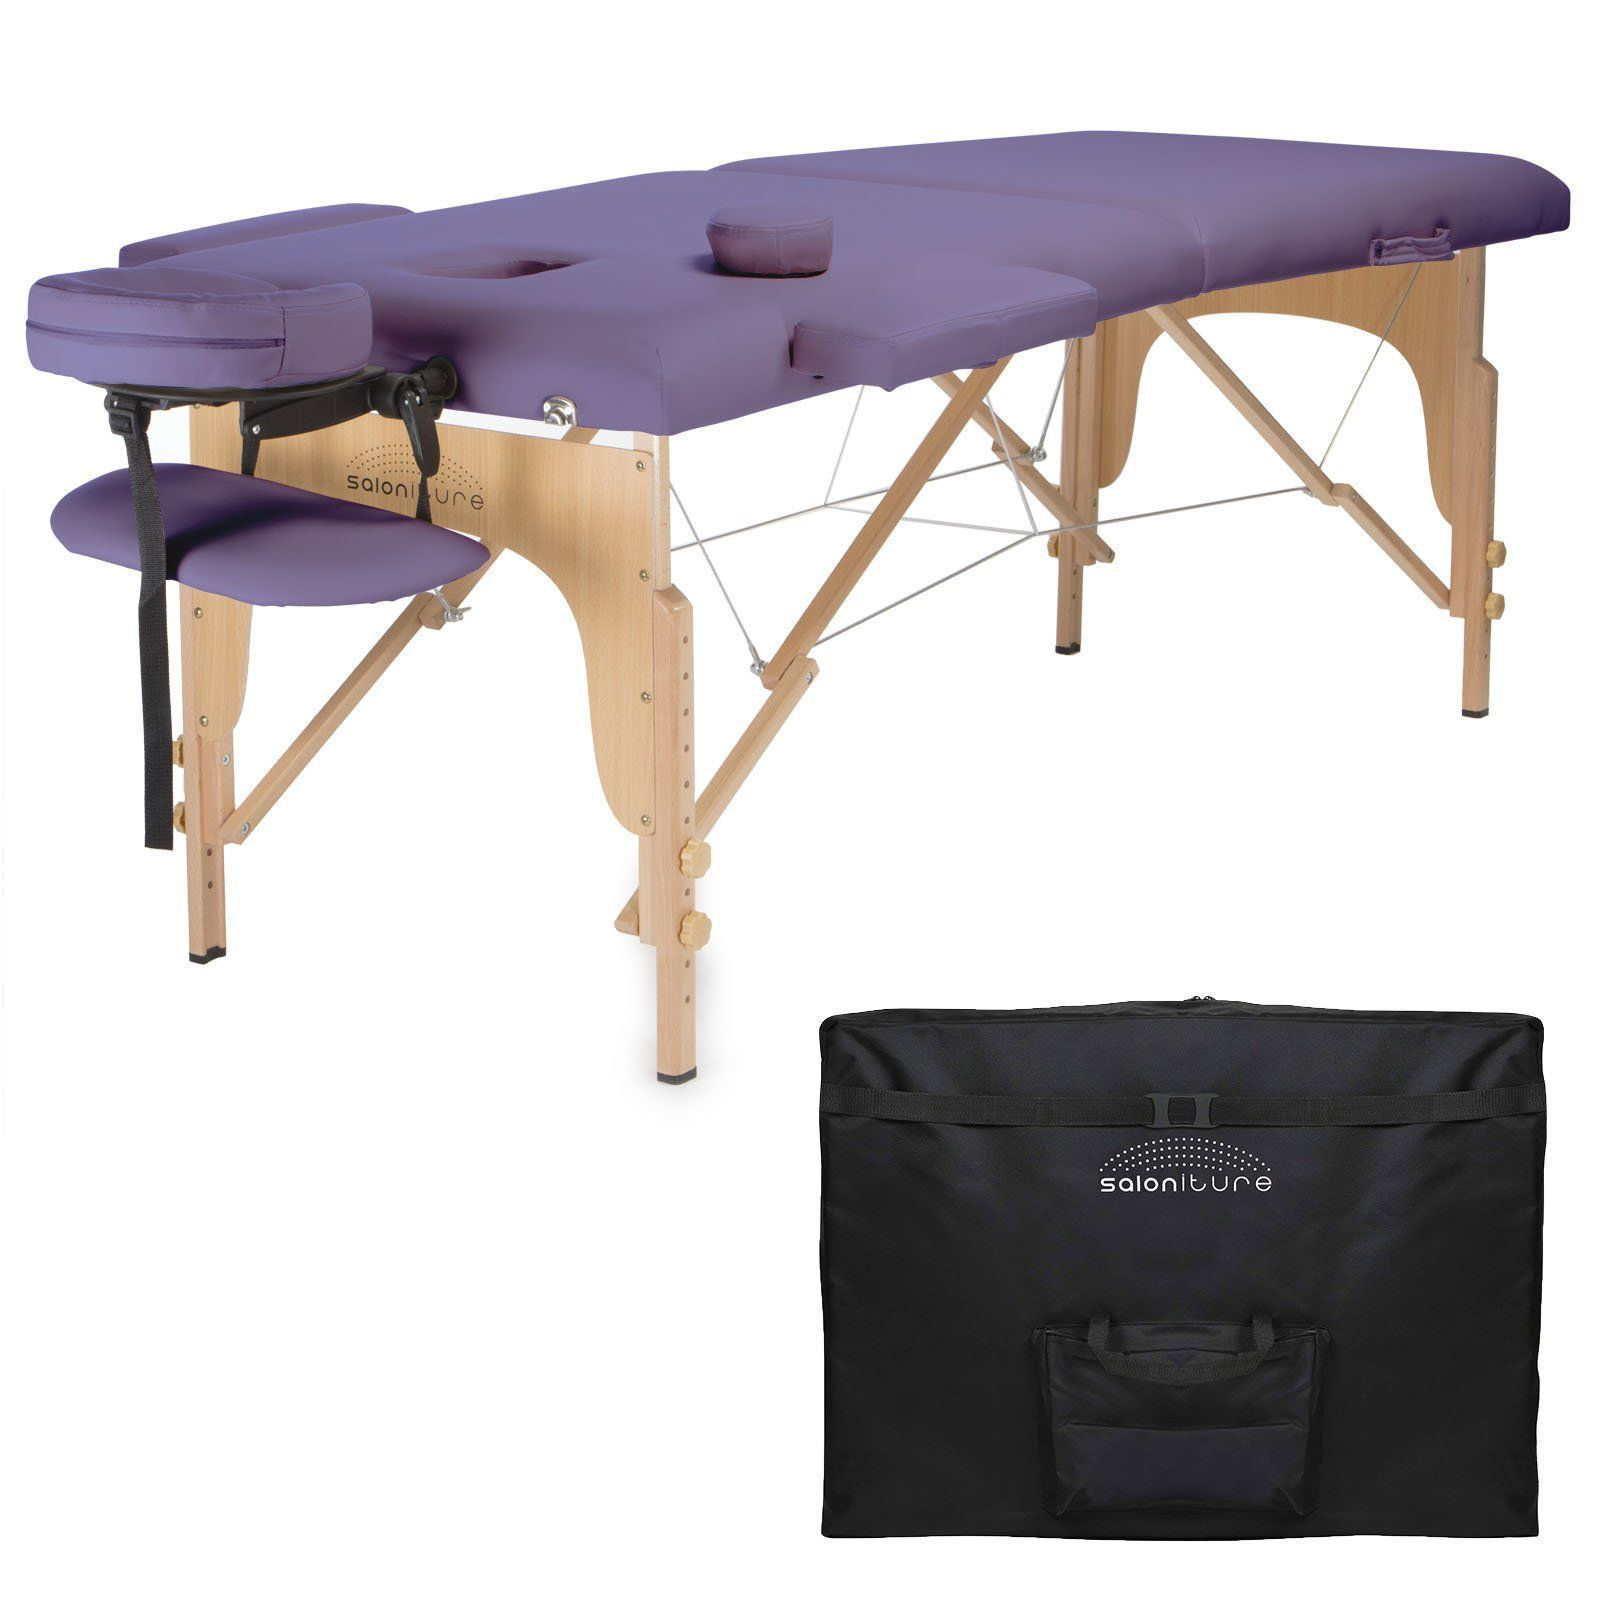 Portable Massage Table With Carrying Case Massagetablesportable Massage Table Massage Tables Massage Chairs